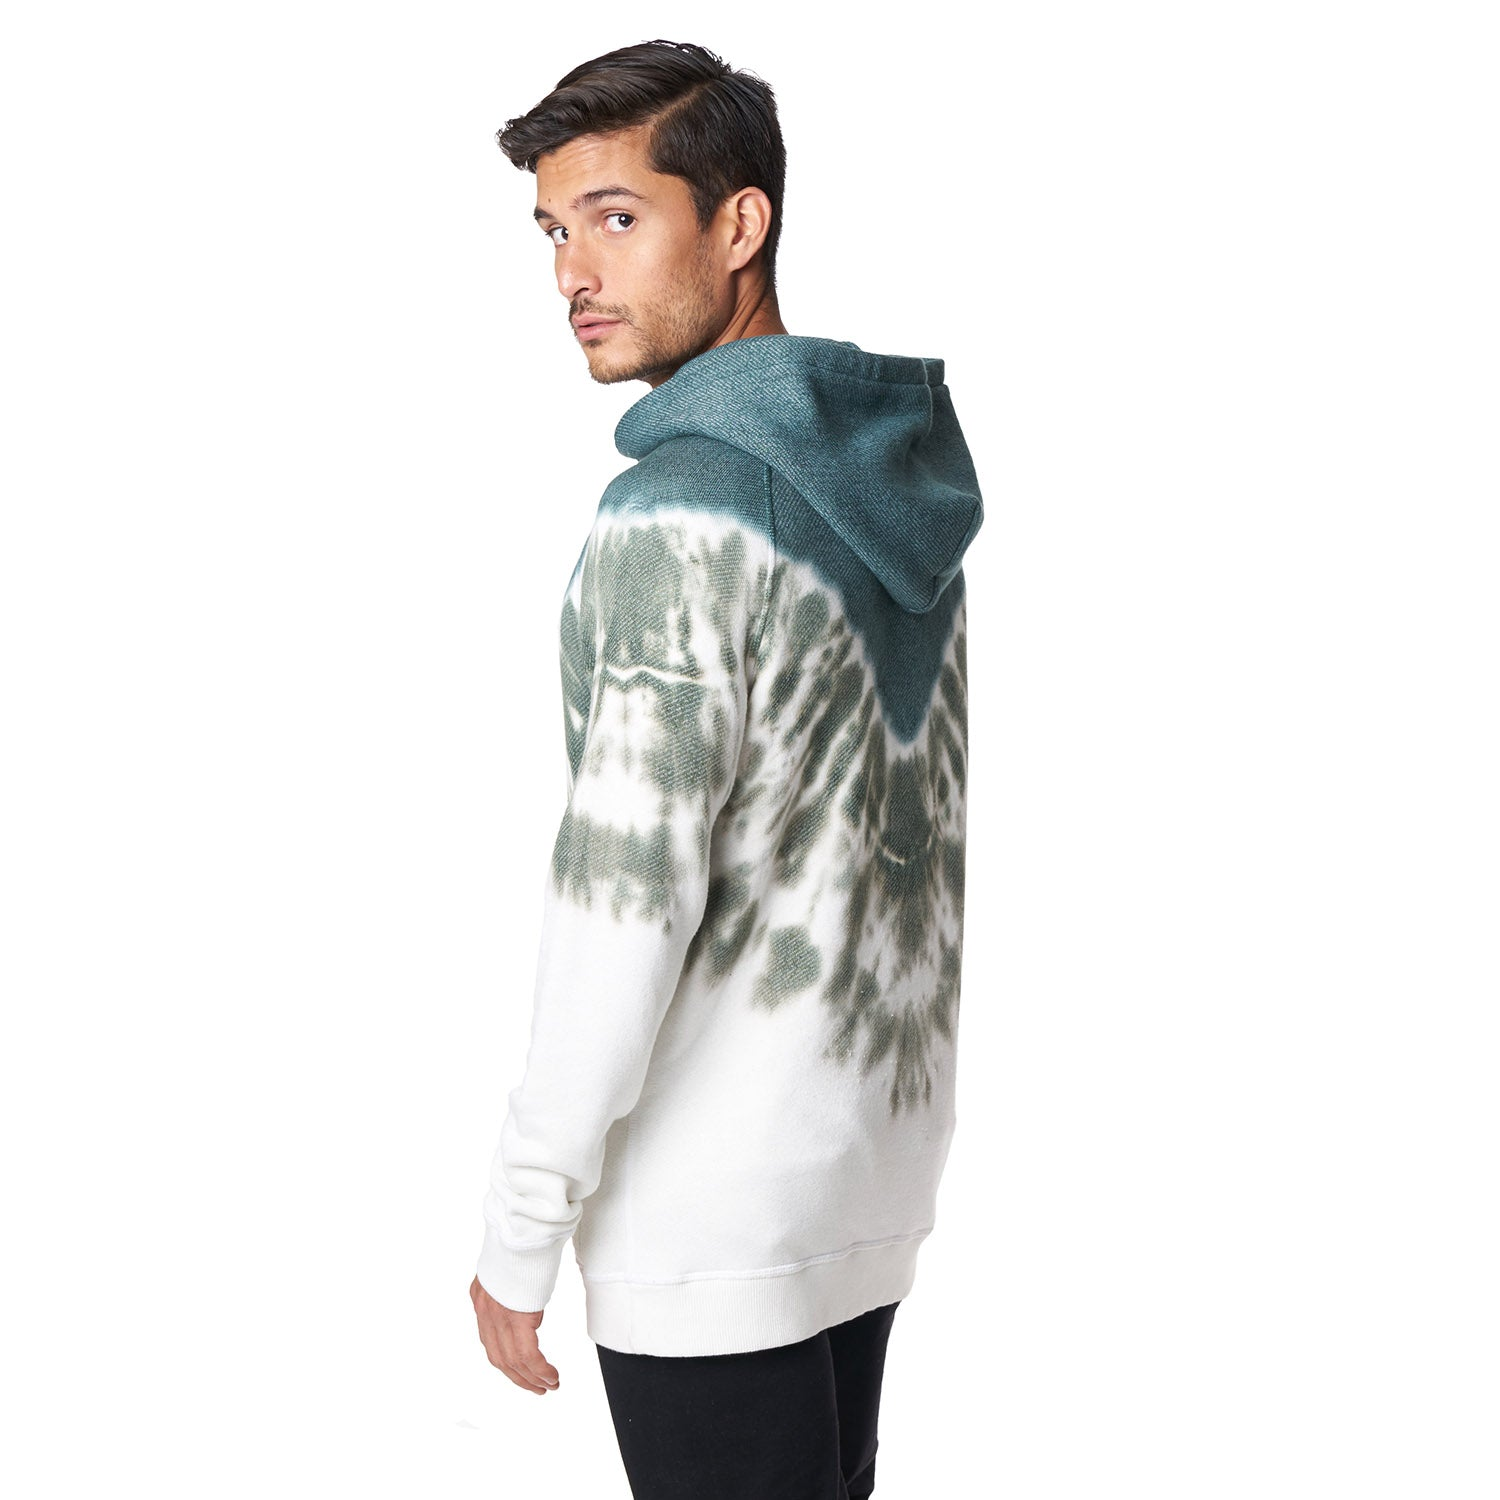 Pull Over Hoodie in Pine Dye - Mitchell Evan